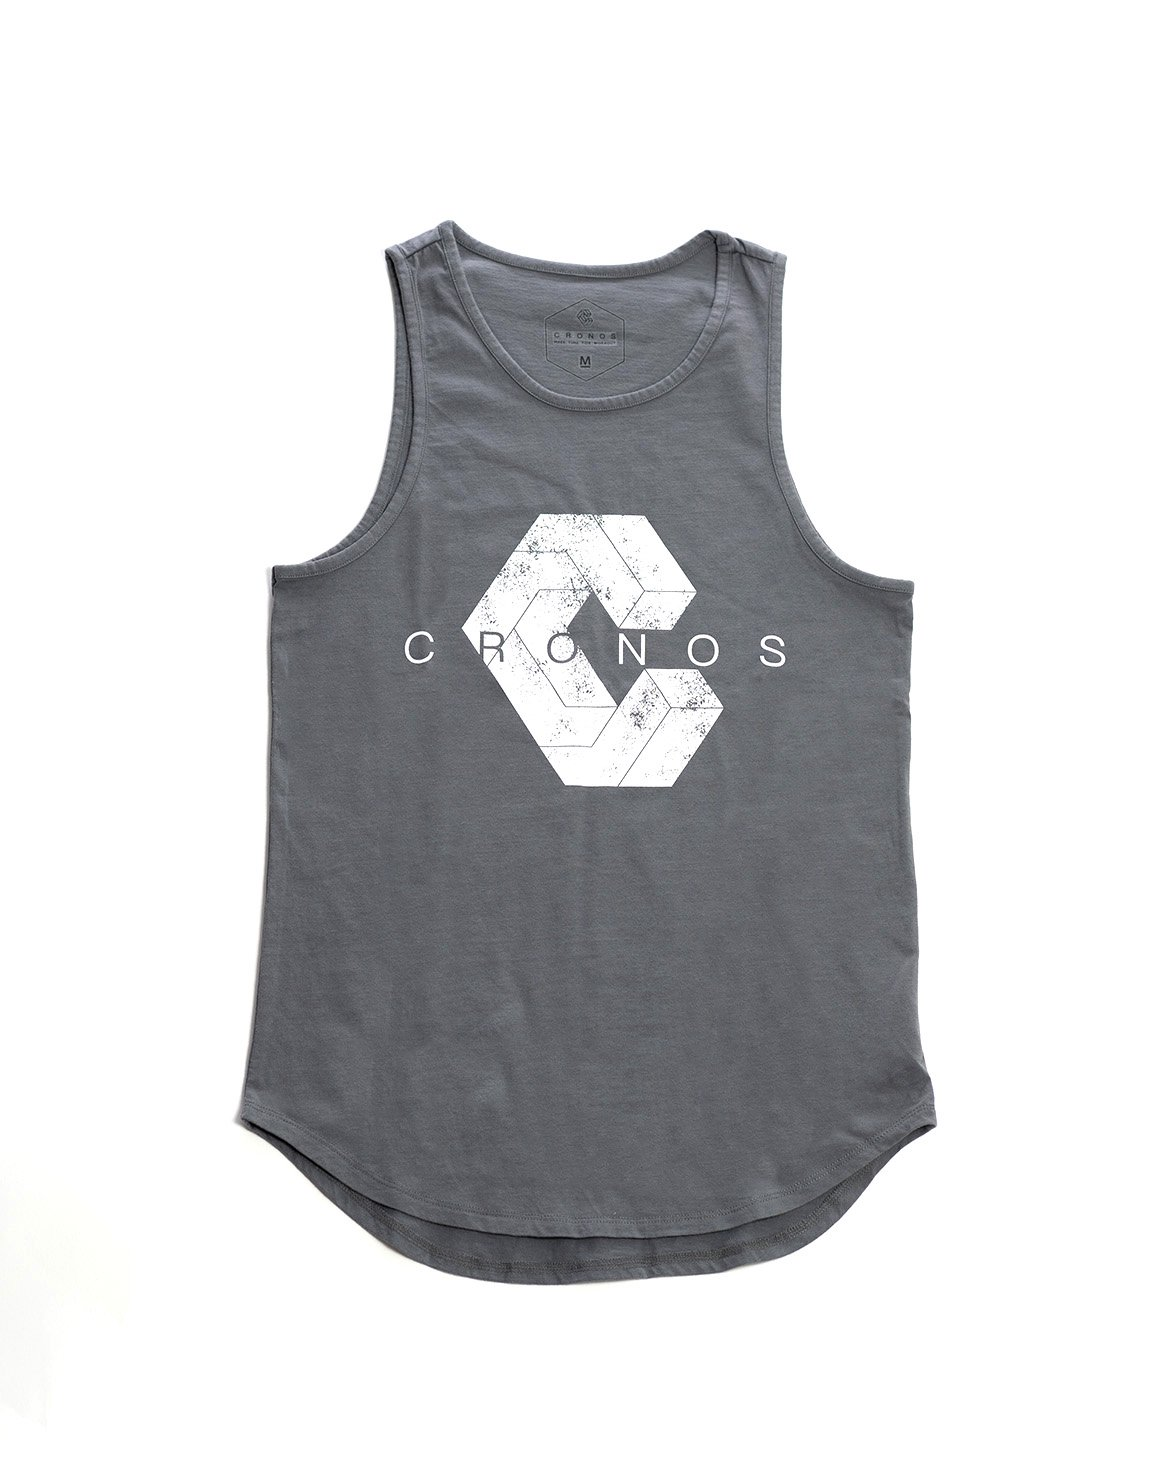 <img class='new_mark_img1' src='https://img.shop-pro.jp/img/new/icons55.gif' style='border:none;display:inline;margin:0px;padding:0px;width:auto;' />CRONOS NEW LOGO TANKTOP GRAY